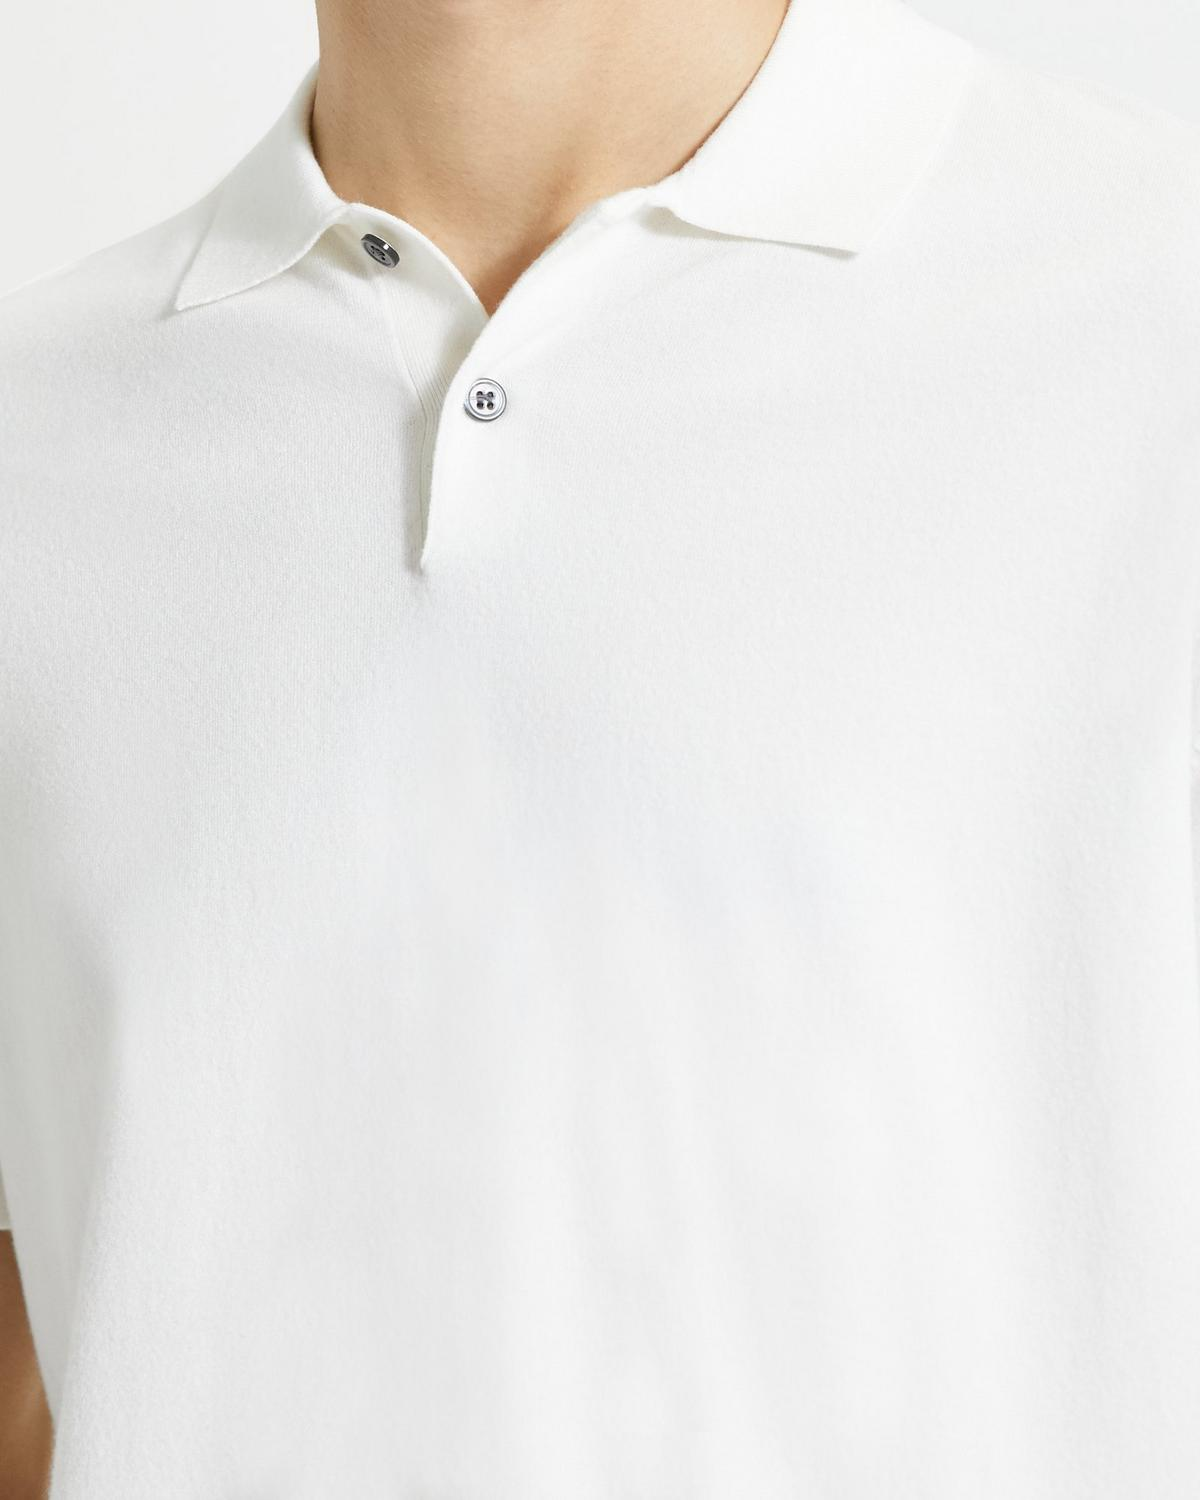 Engineered Polo